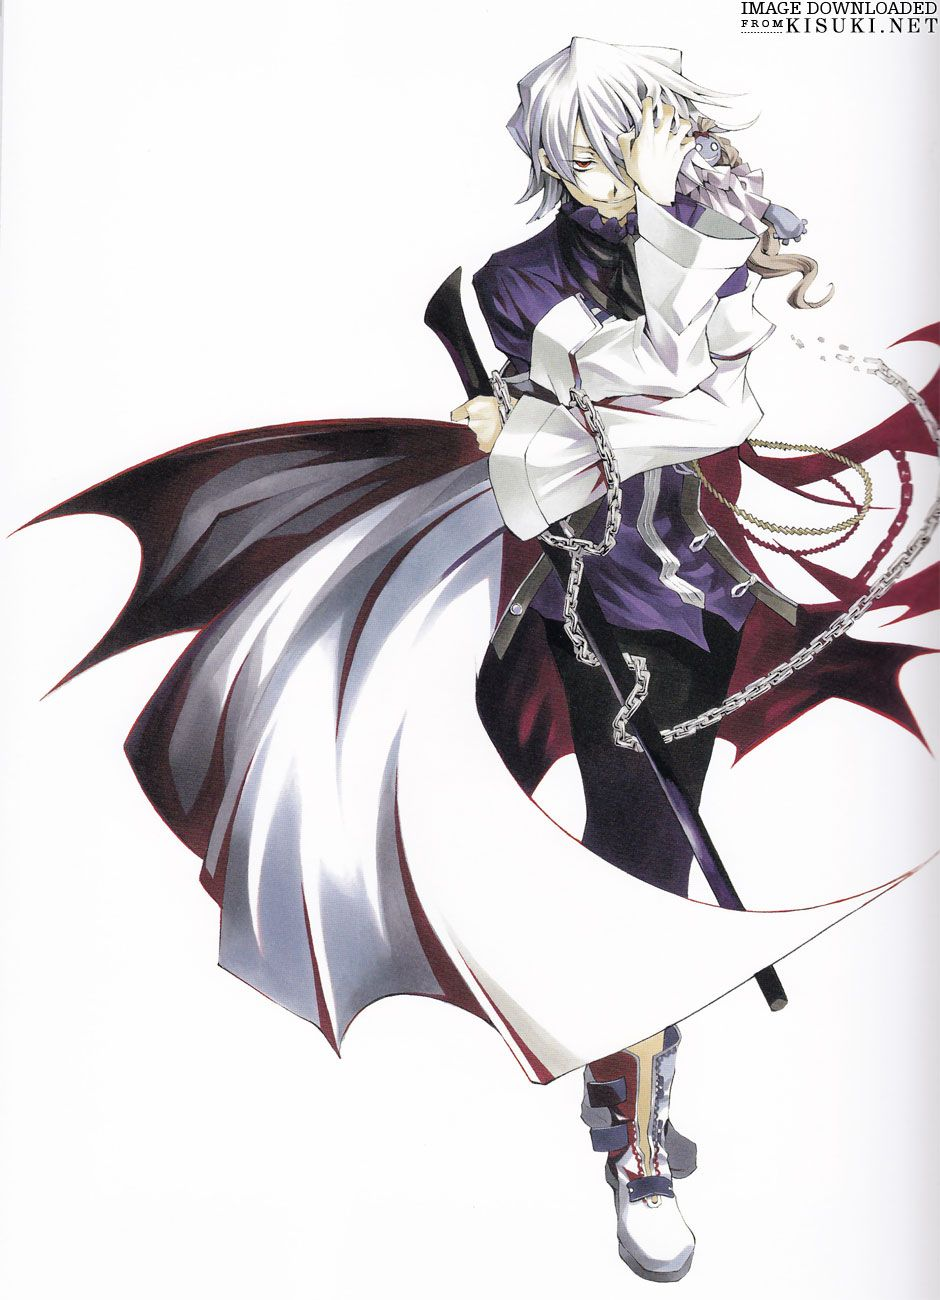 Pandora Hearts Xerxes Break White Coat Outfit